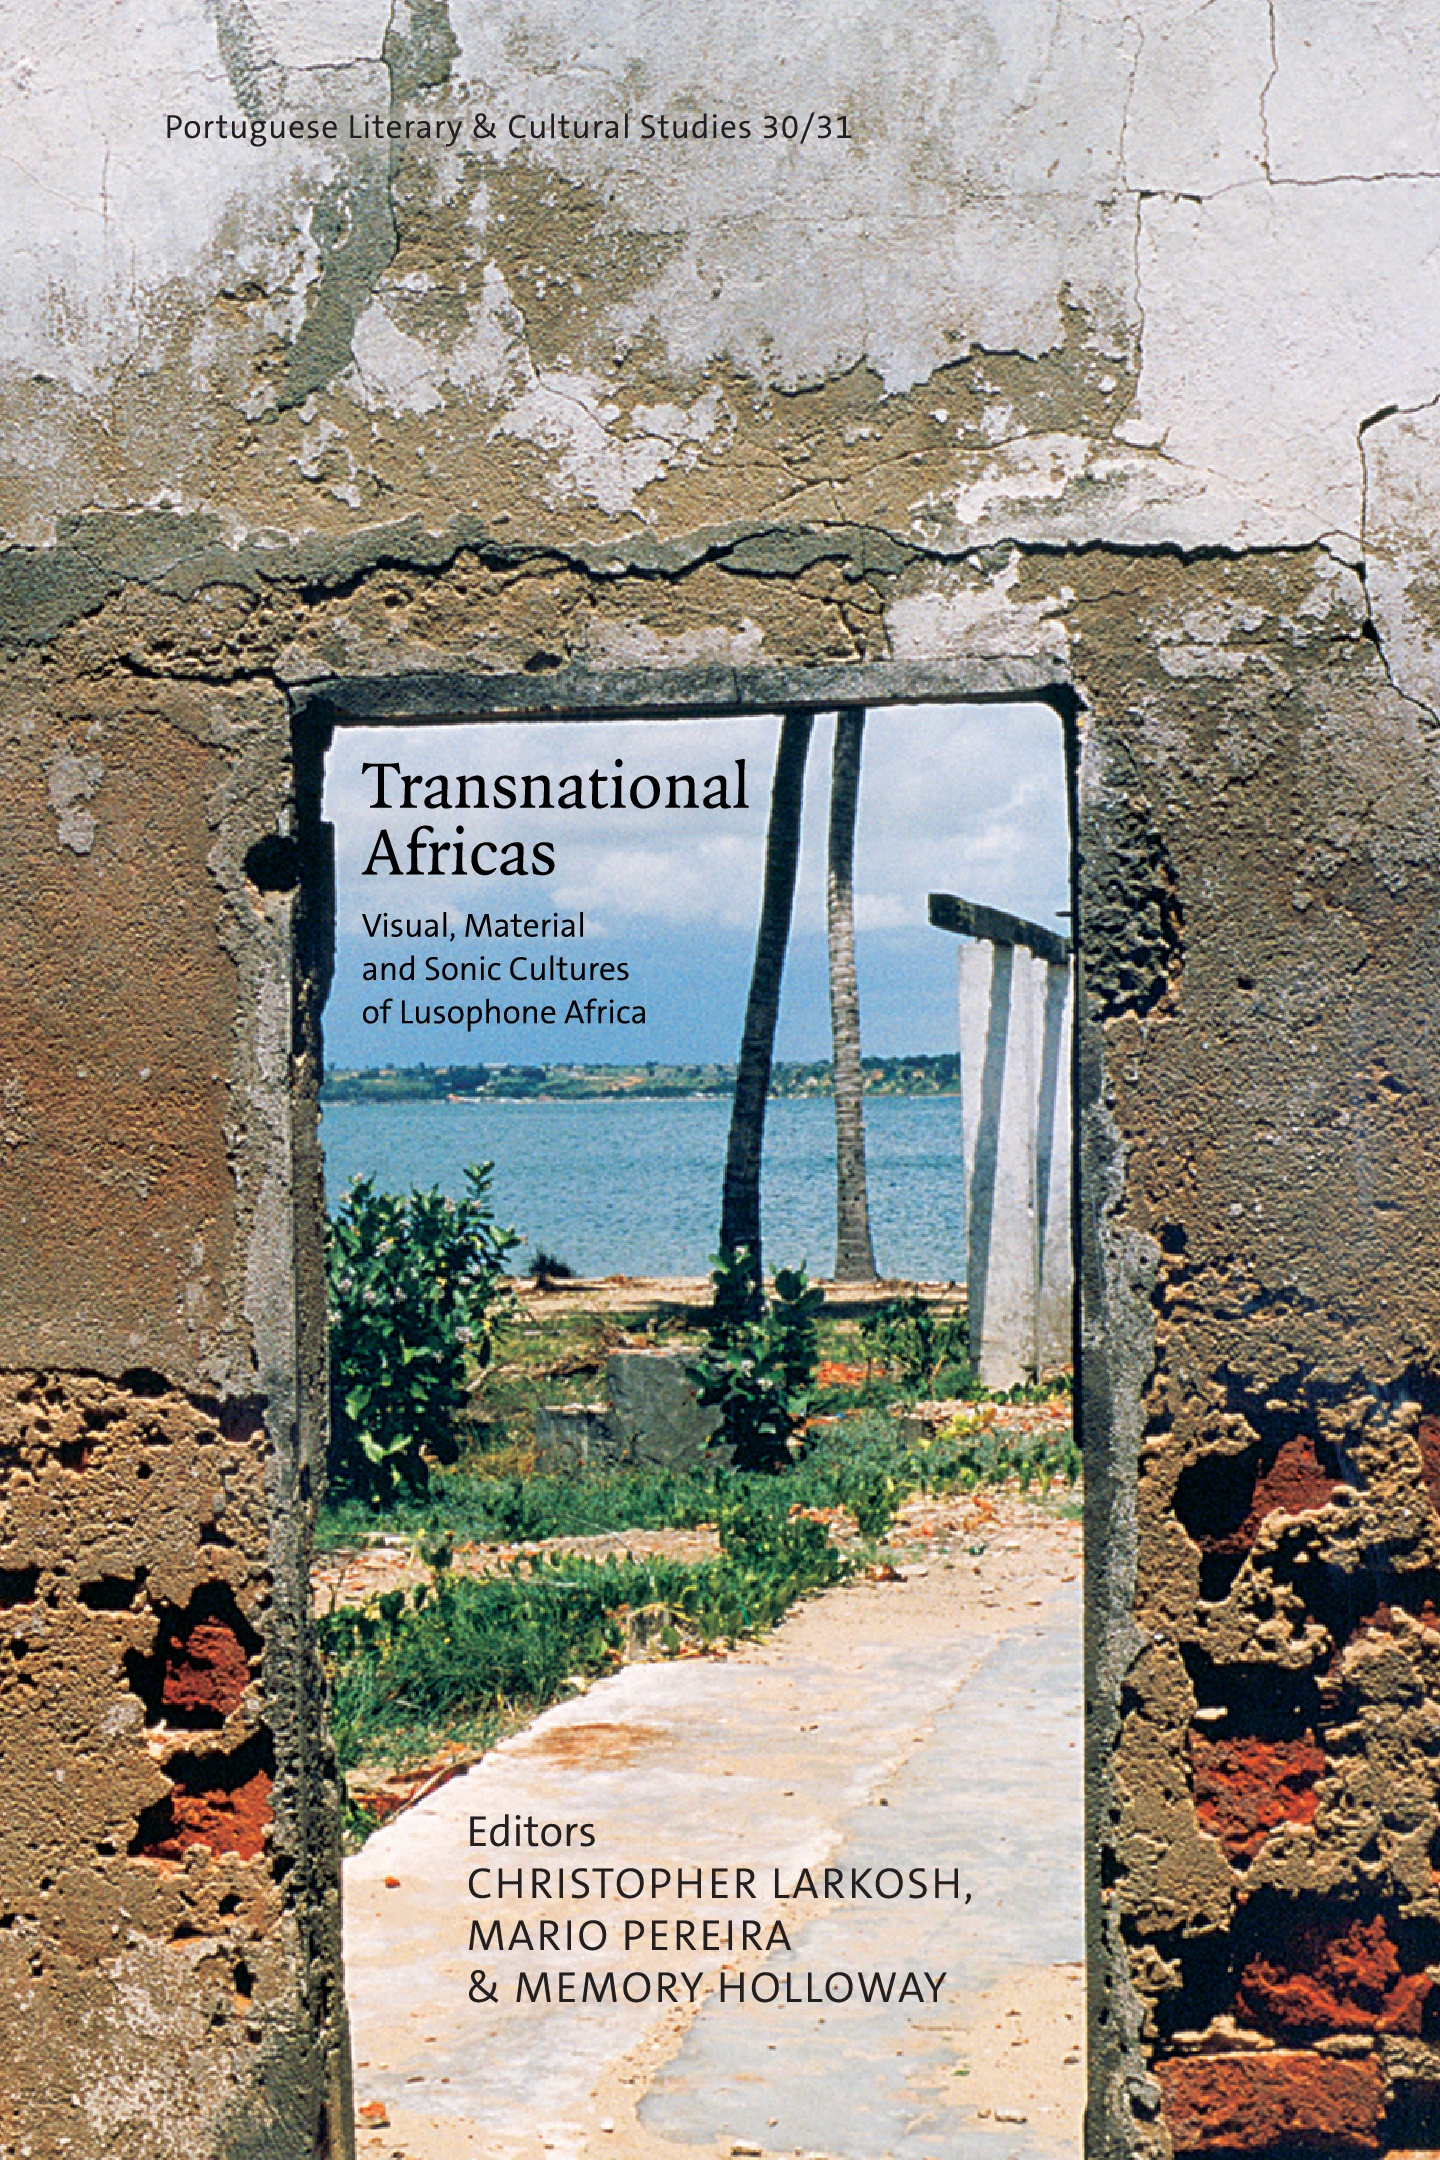 Cover image of PLCS 30/31. Picture of a doorway in a stucco wall with a water view.